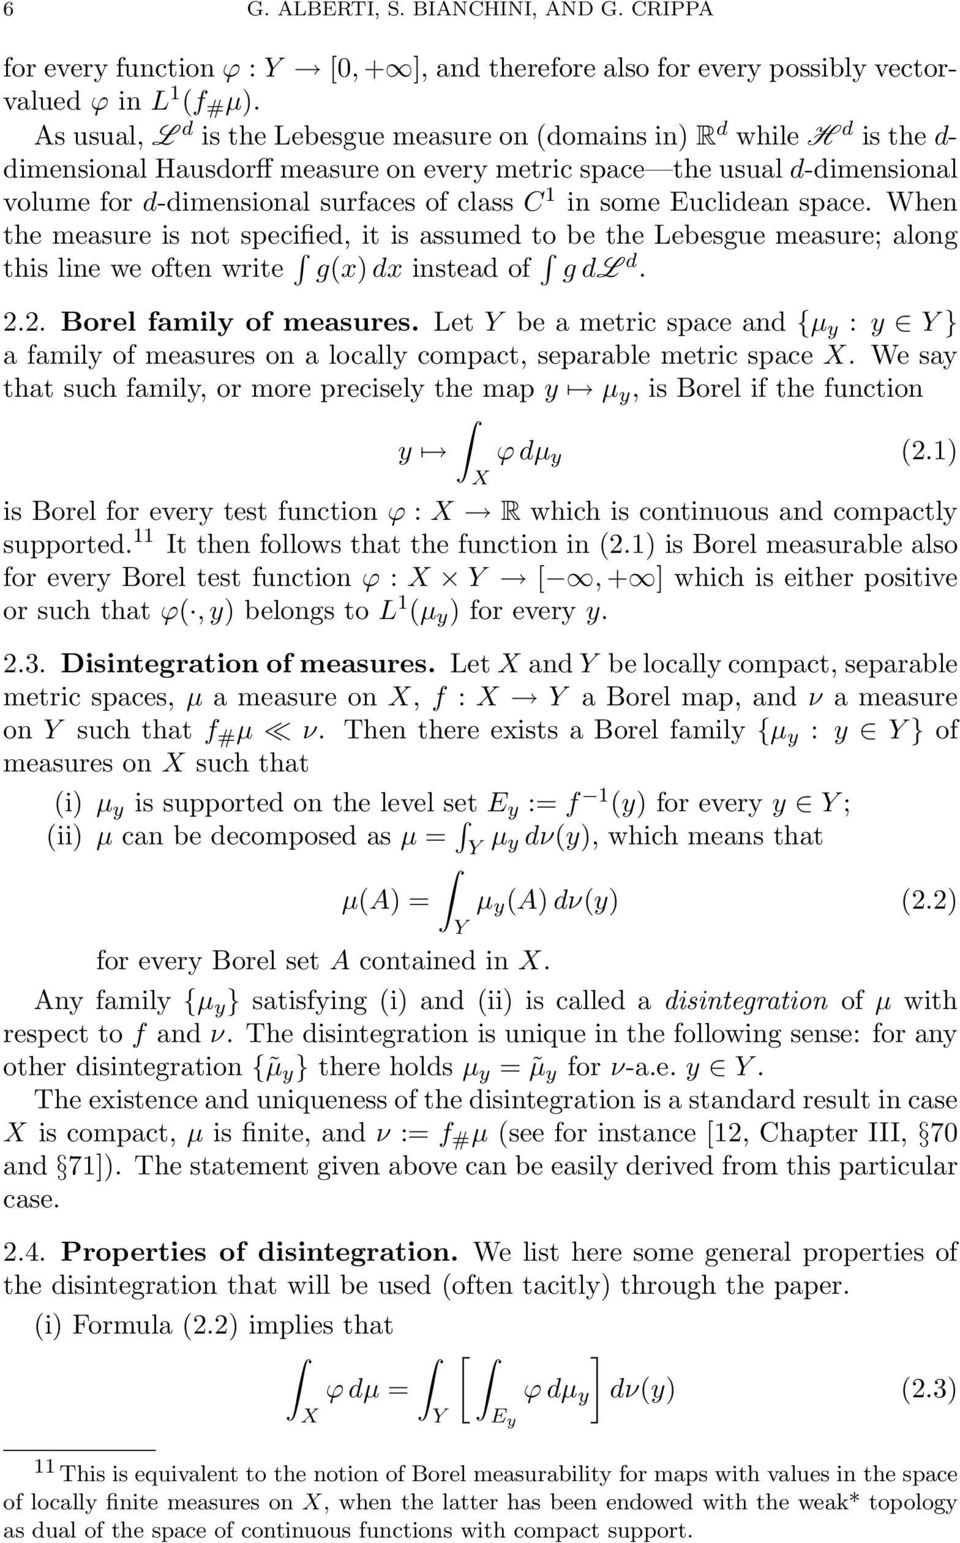 in some Euclidean space. When the measure is not specified, it is assumed to be the Lebesgue measure; along this line we often write gx) dx instead of g dl d. 2.2. Borel family of measures.